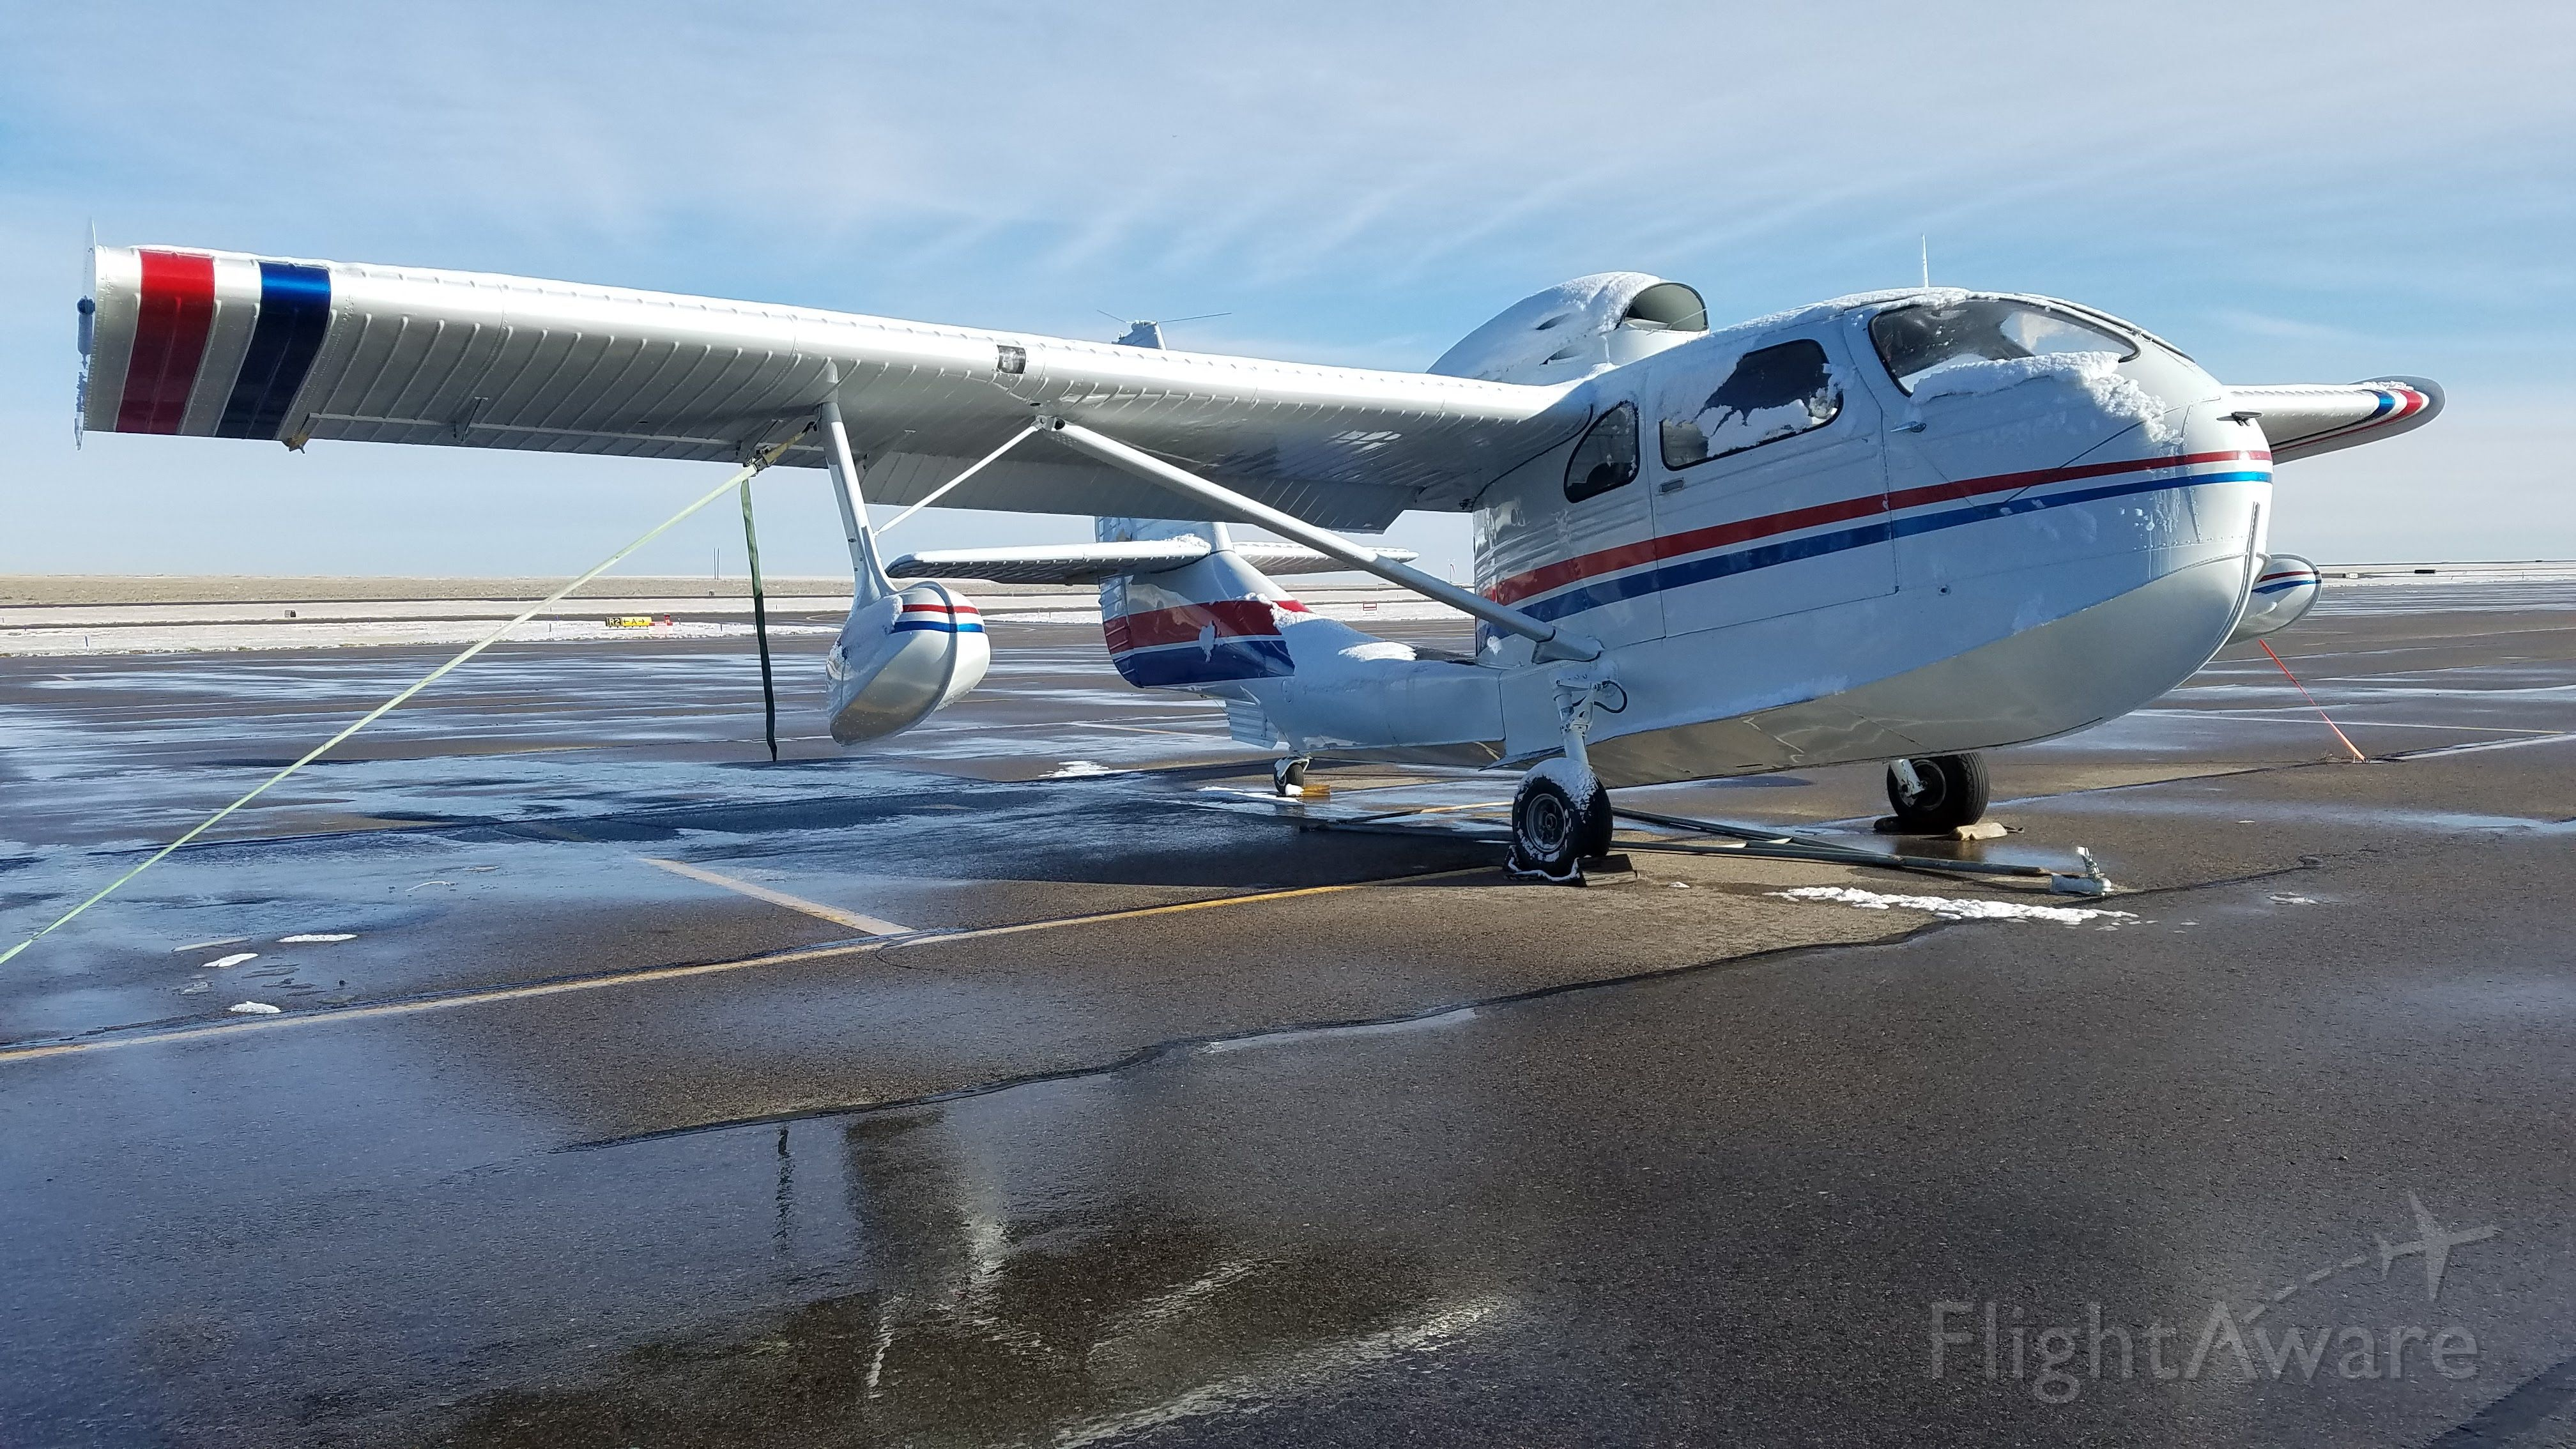 REPUBLIC Seabee (N6234K) - Seabee dreaming of warmer weather at Front Range Airport